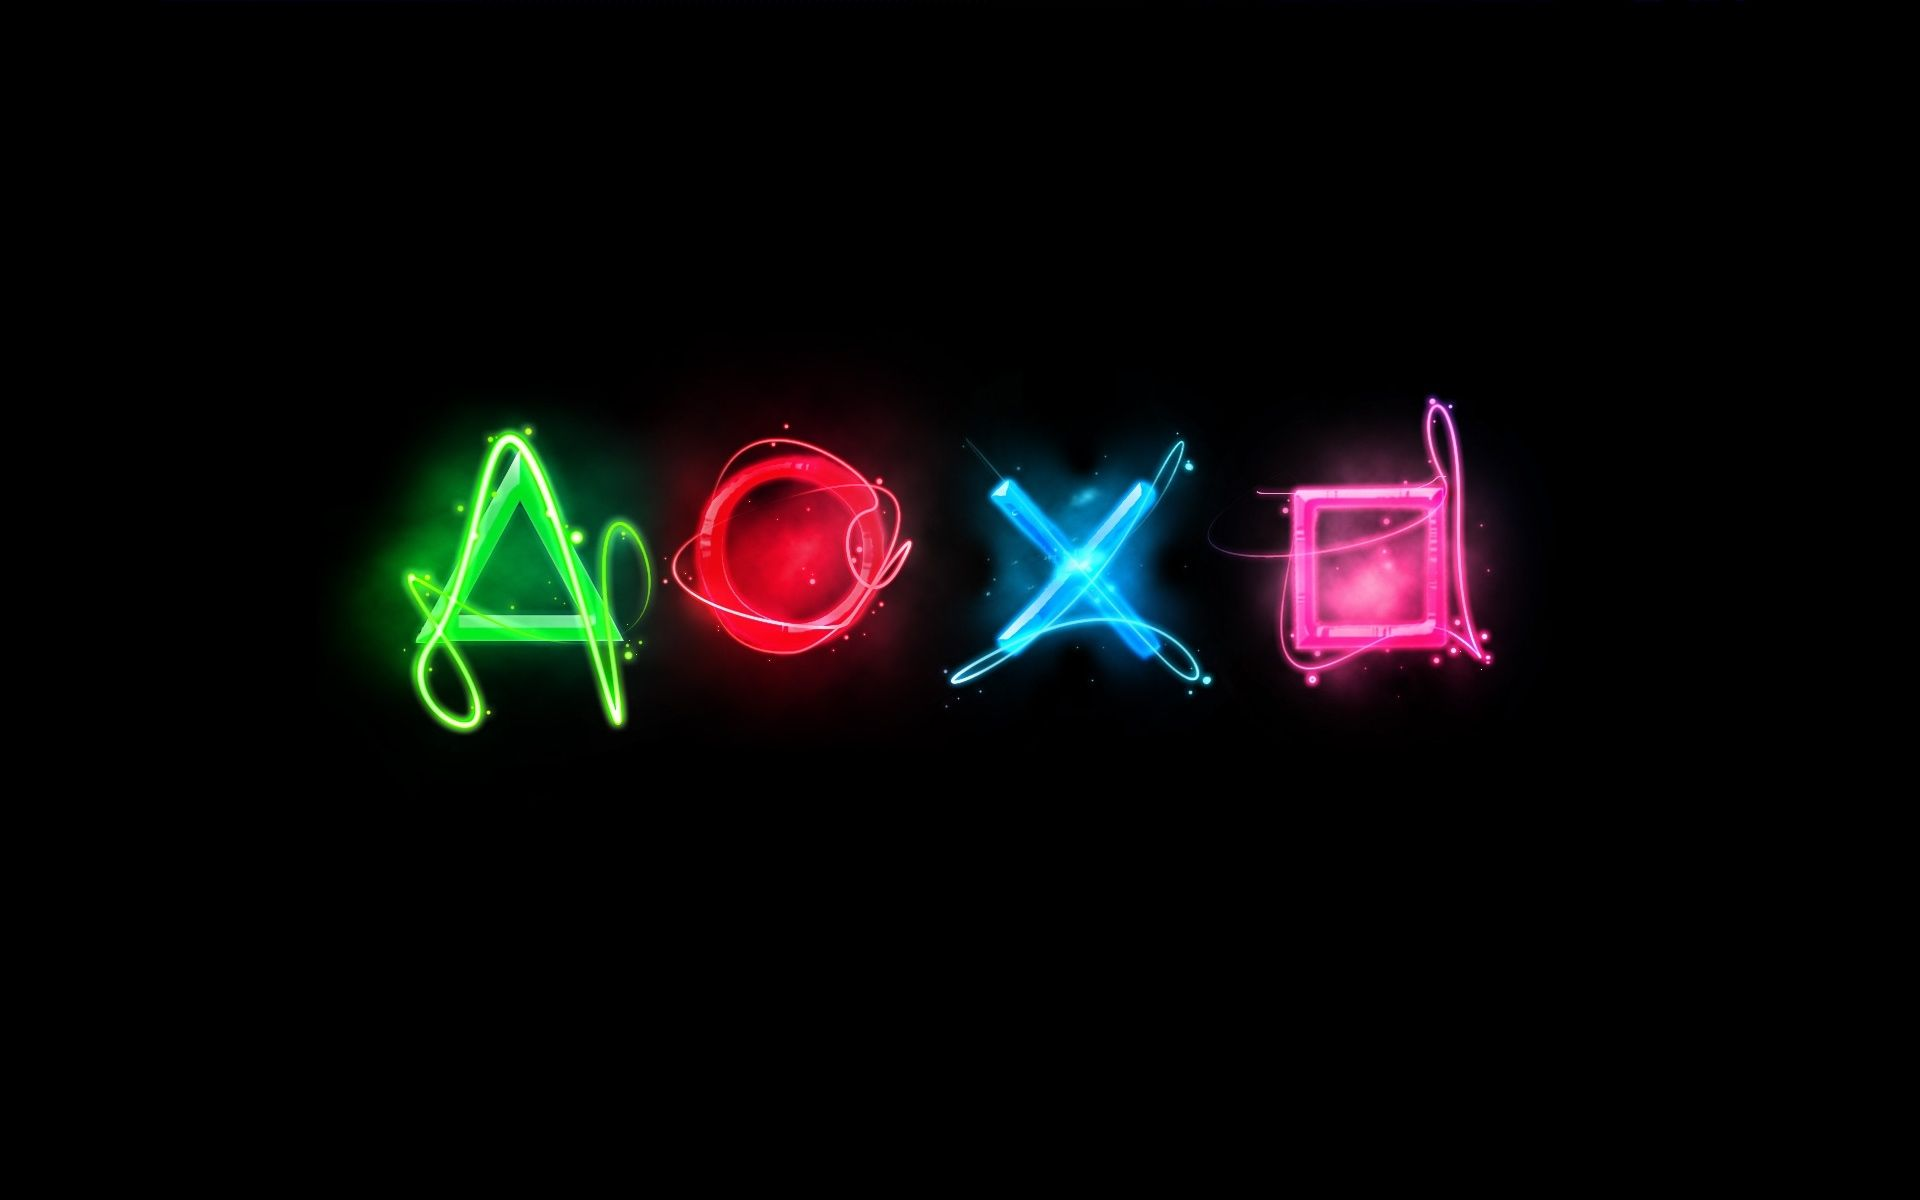 Playstation 4 Logo Wallpapers Places to Visit Xbox 360 games 1920x1200